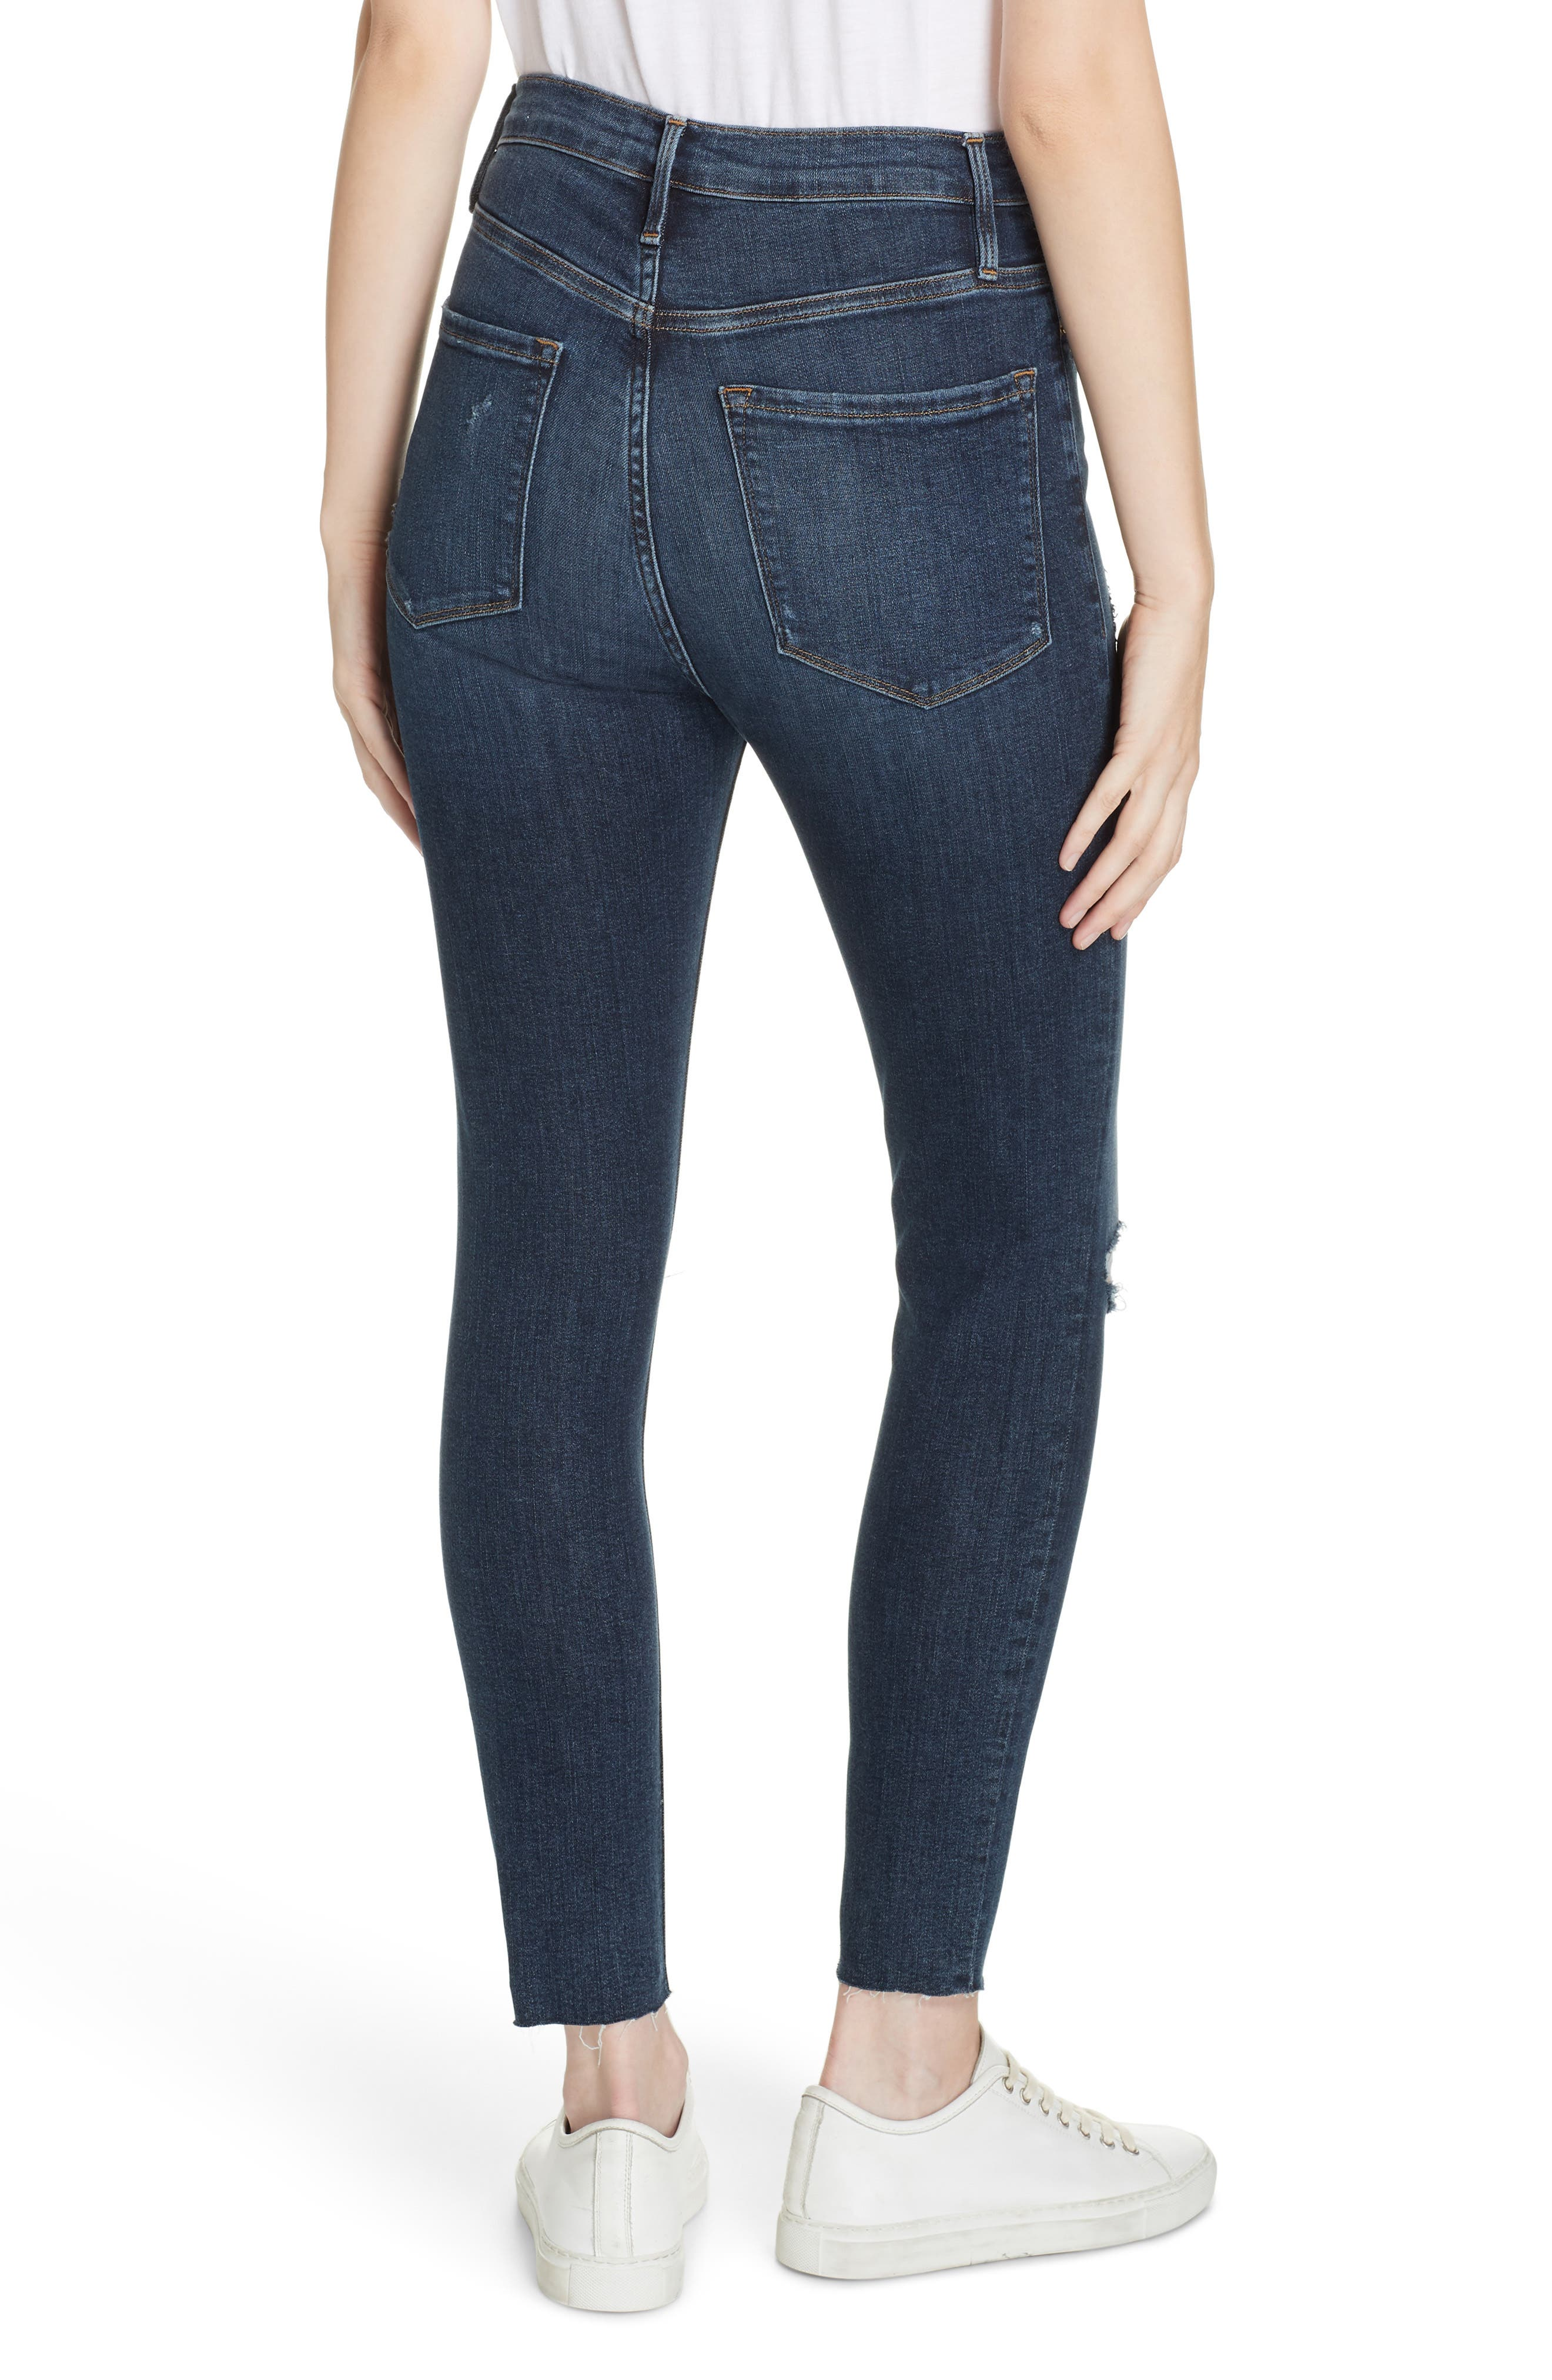 FRAME, Ali Ripped High Waist Crop Cigarette Jeans, Alternate thumbnail 2, color, BROKEDOWN PALACE